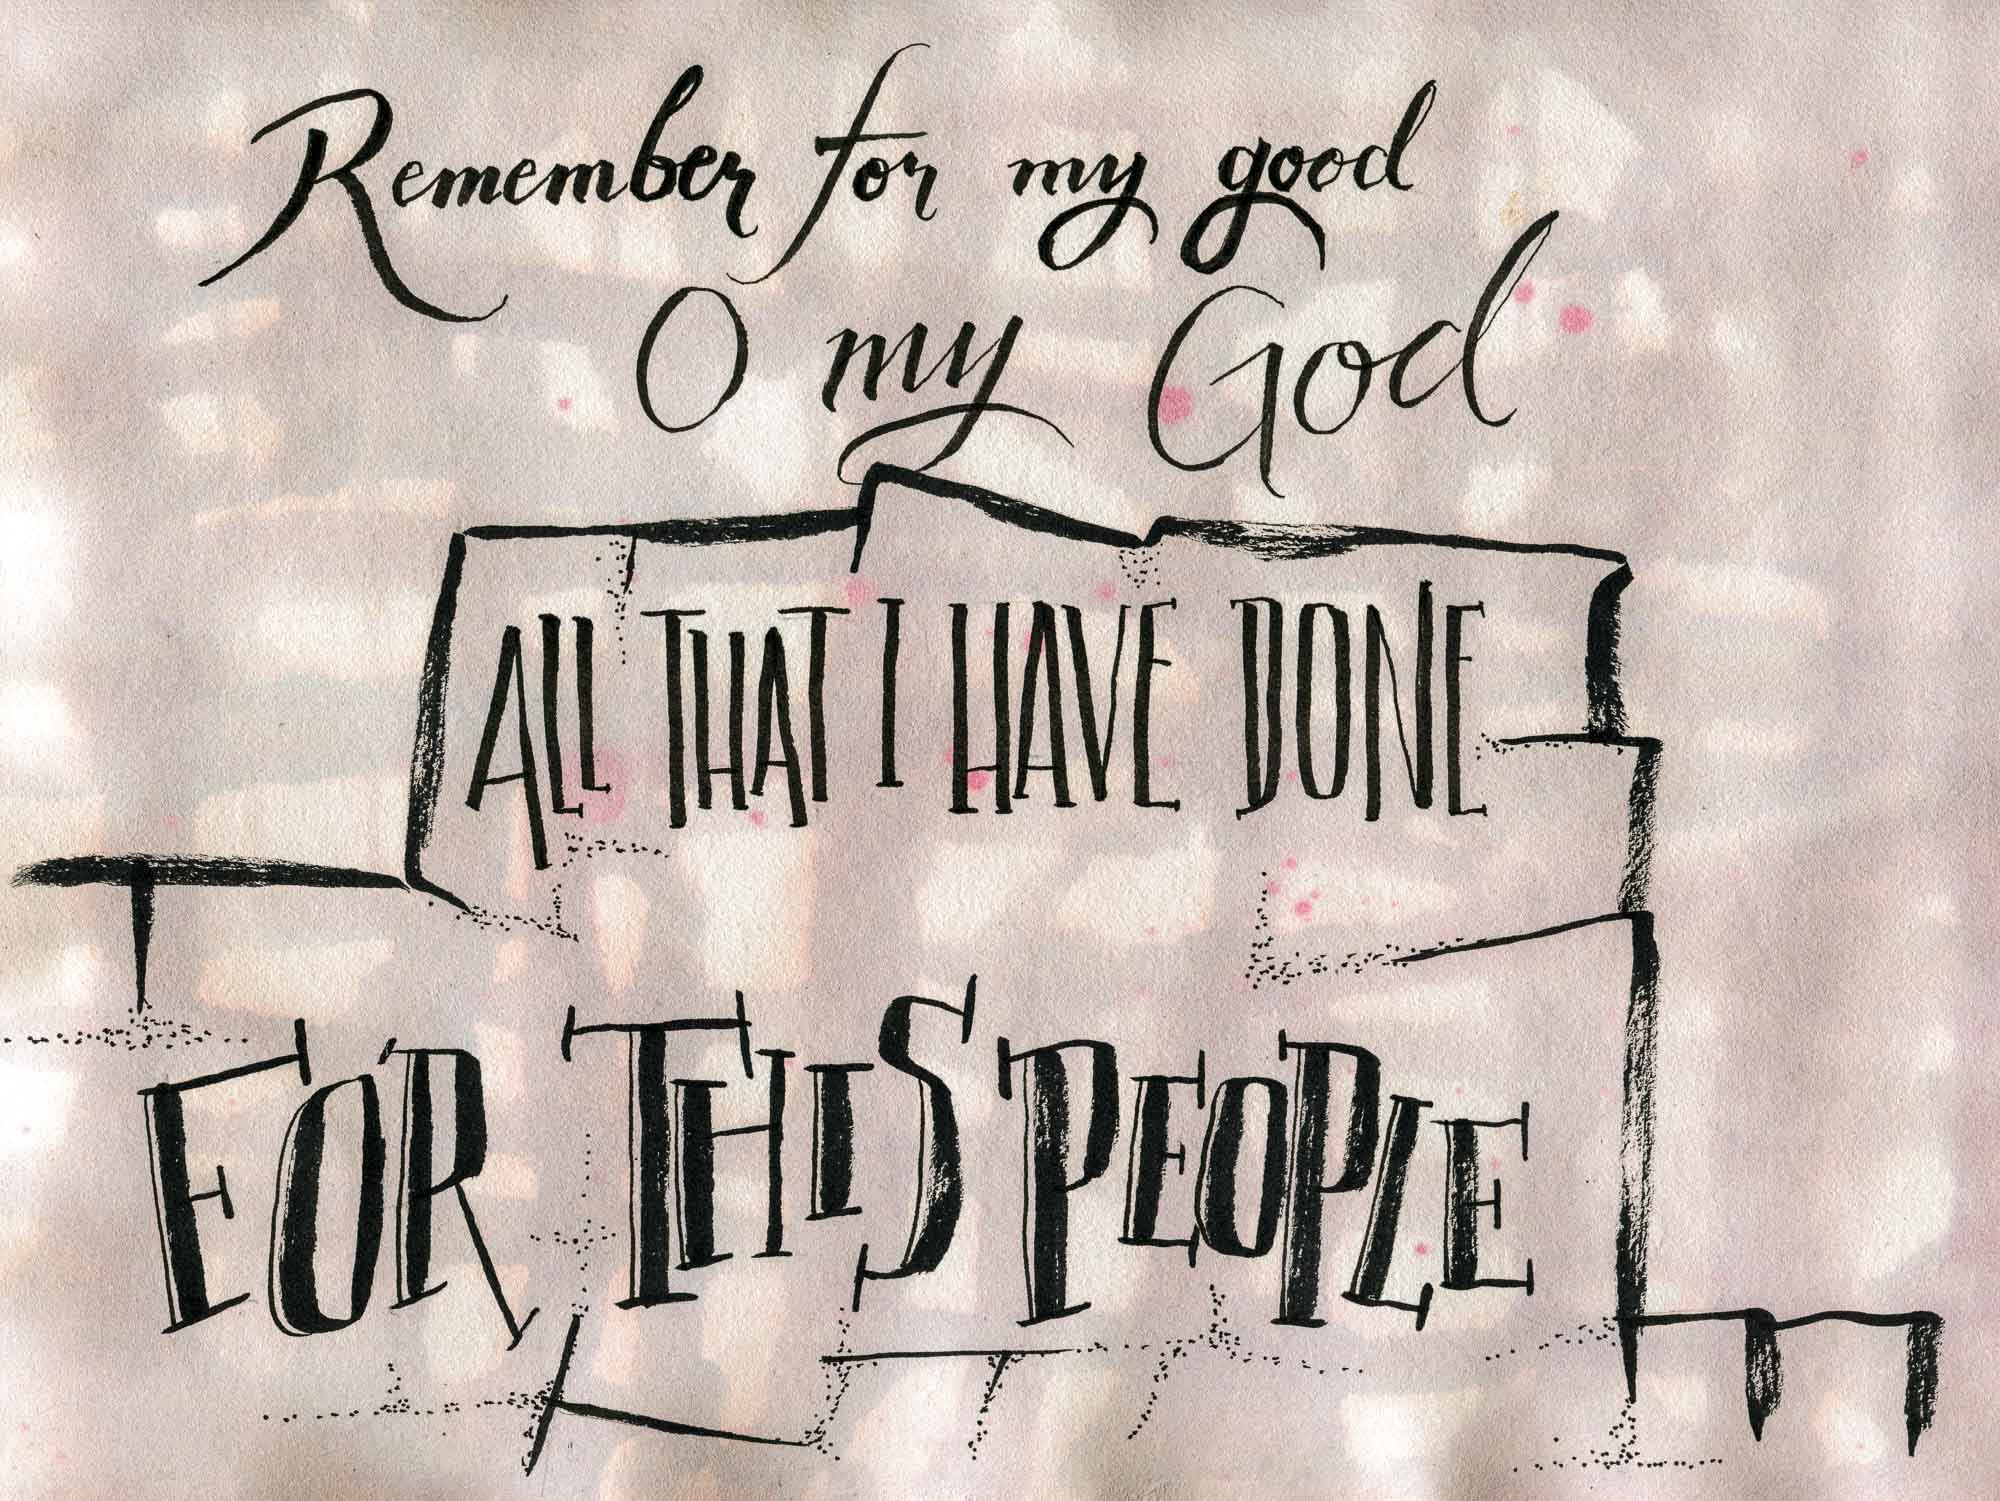 Nehemiah 5:19 Bible verse art